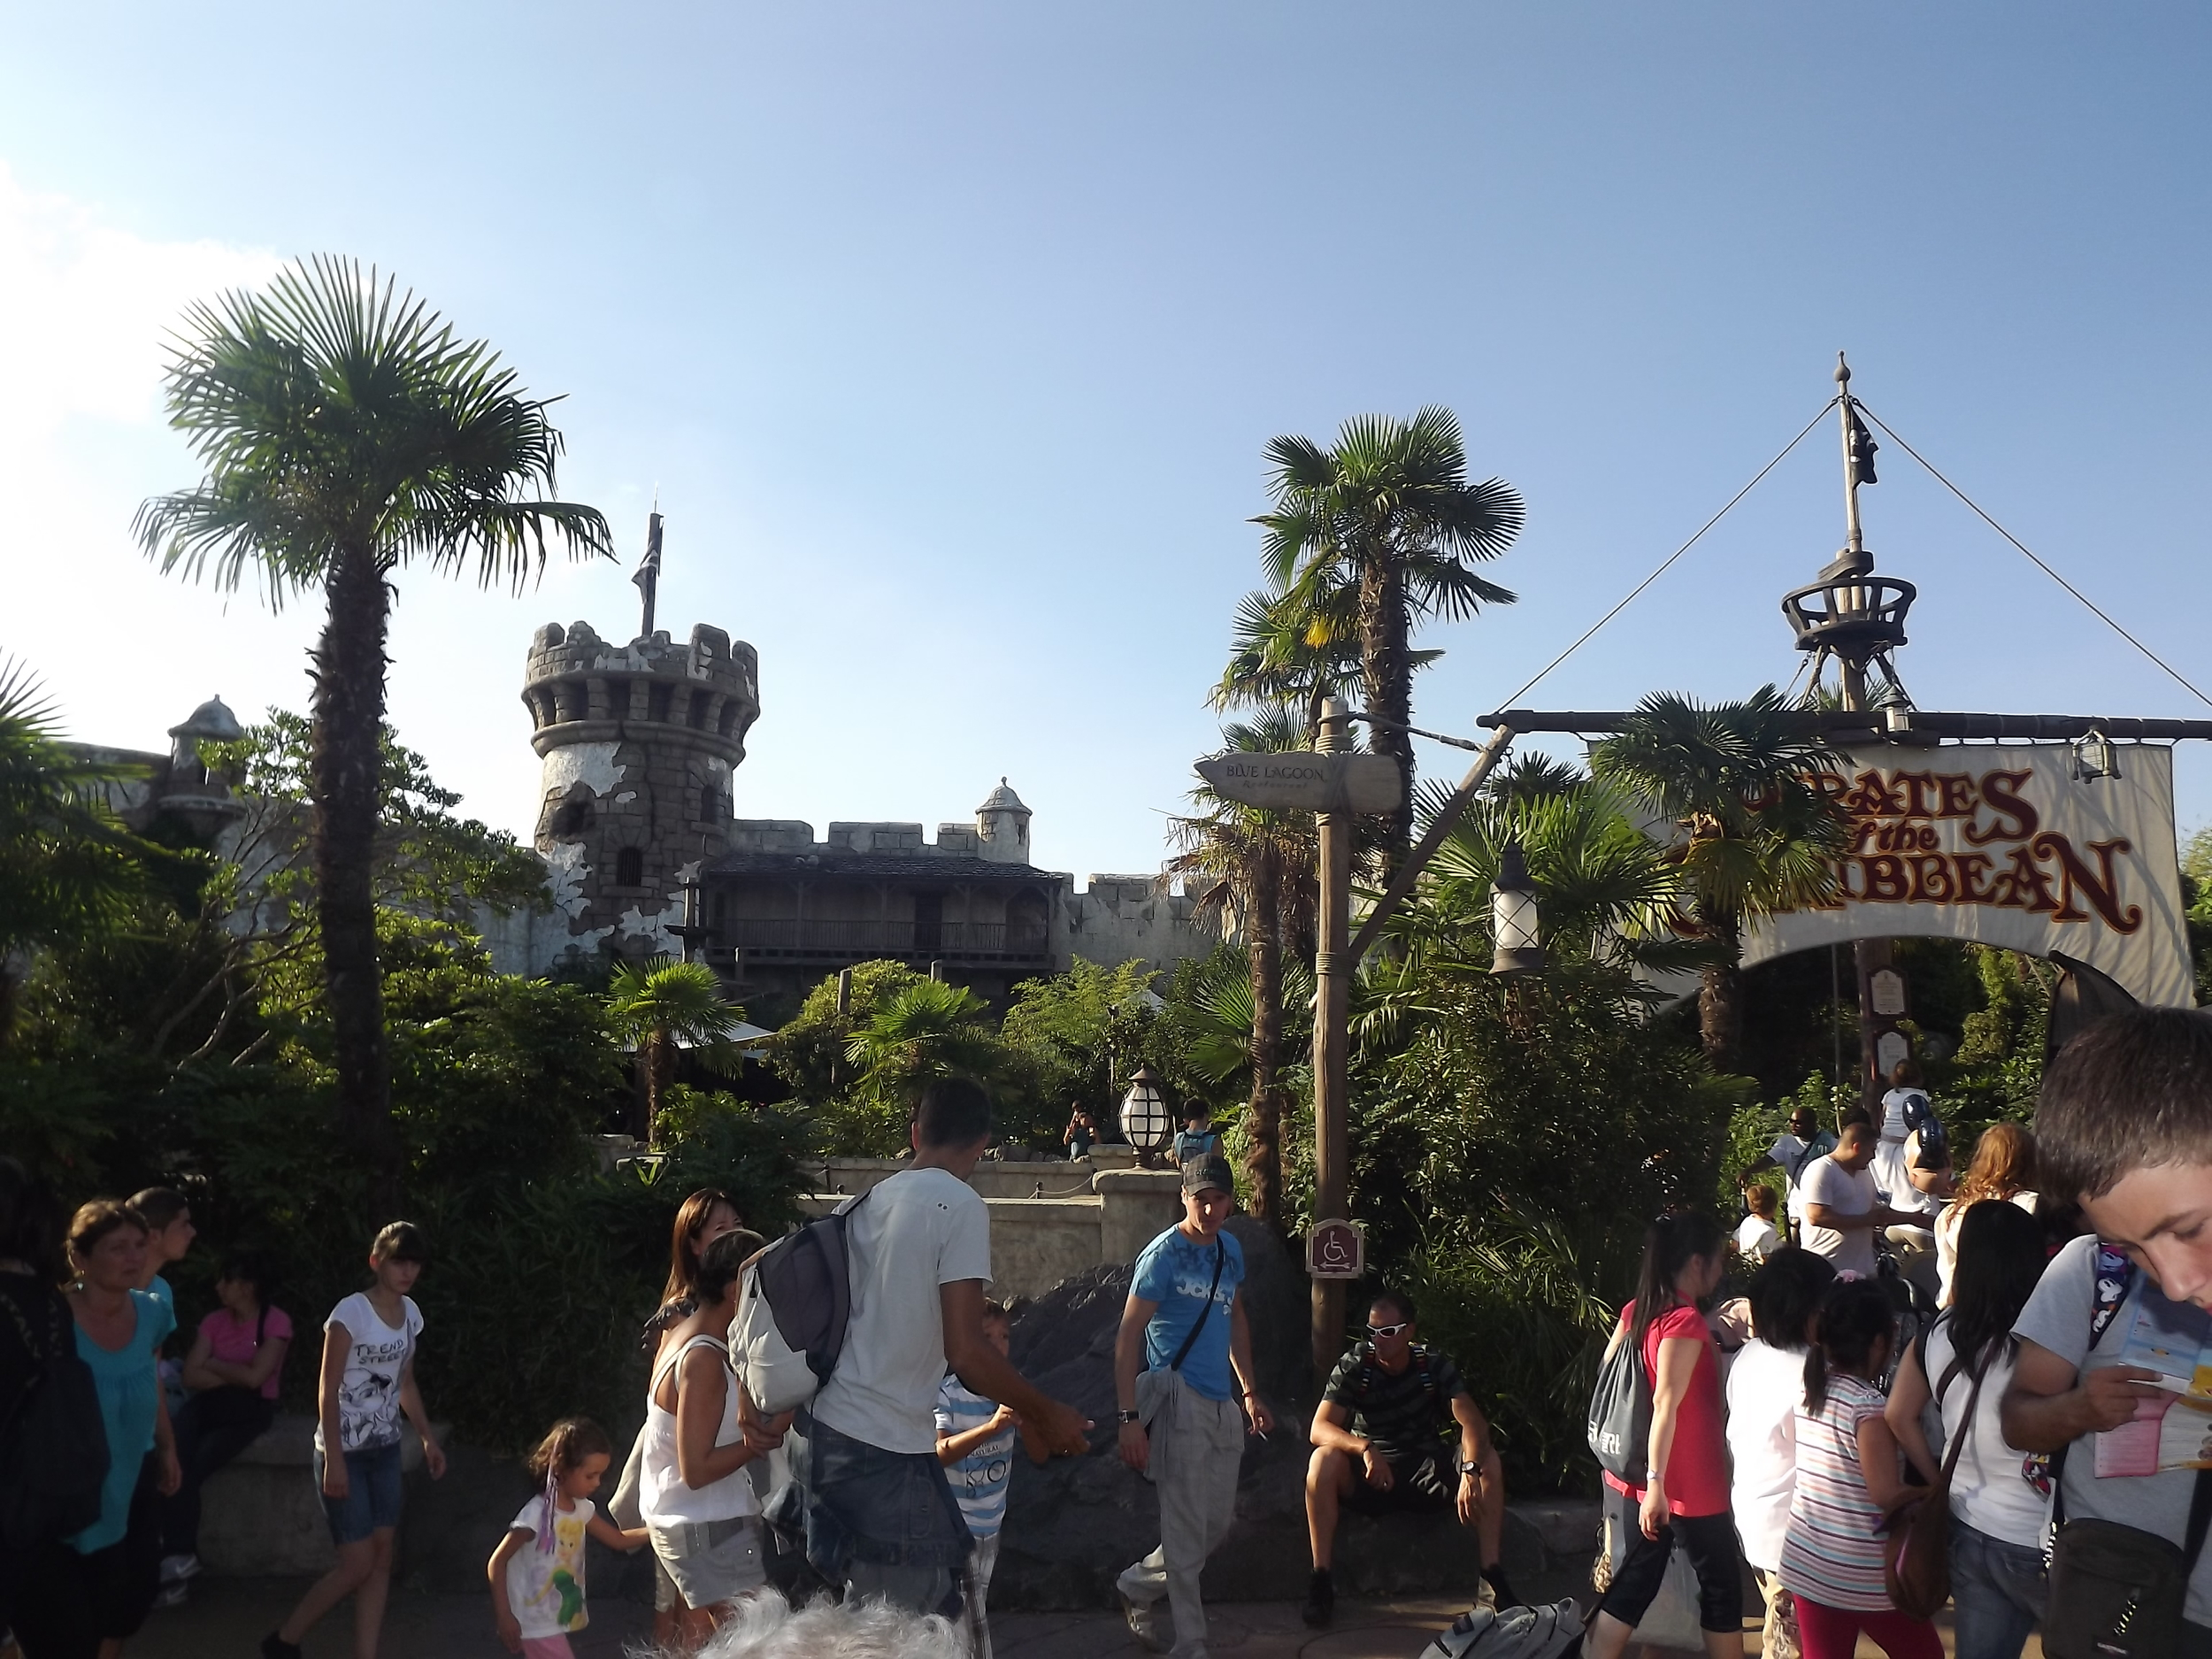 Pirates_of_the_Caribbean_Disneyland_Paris_Summer_2011.JPG